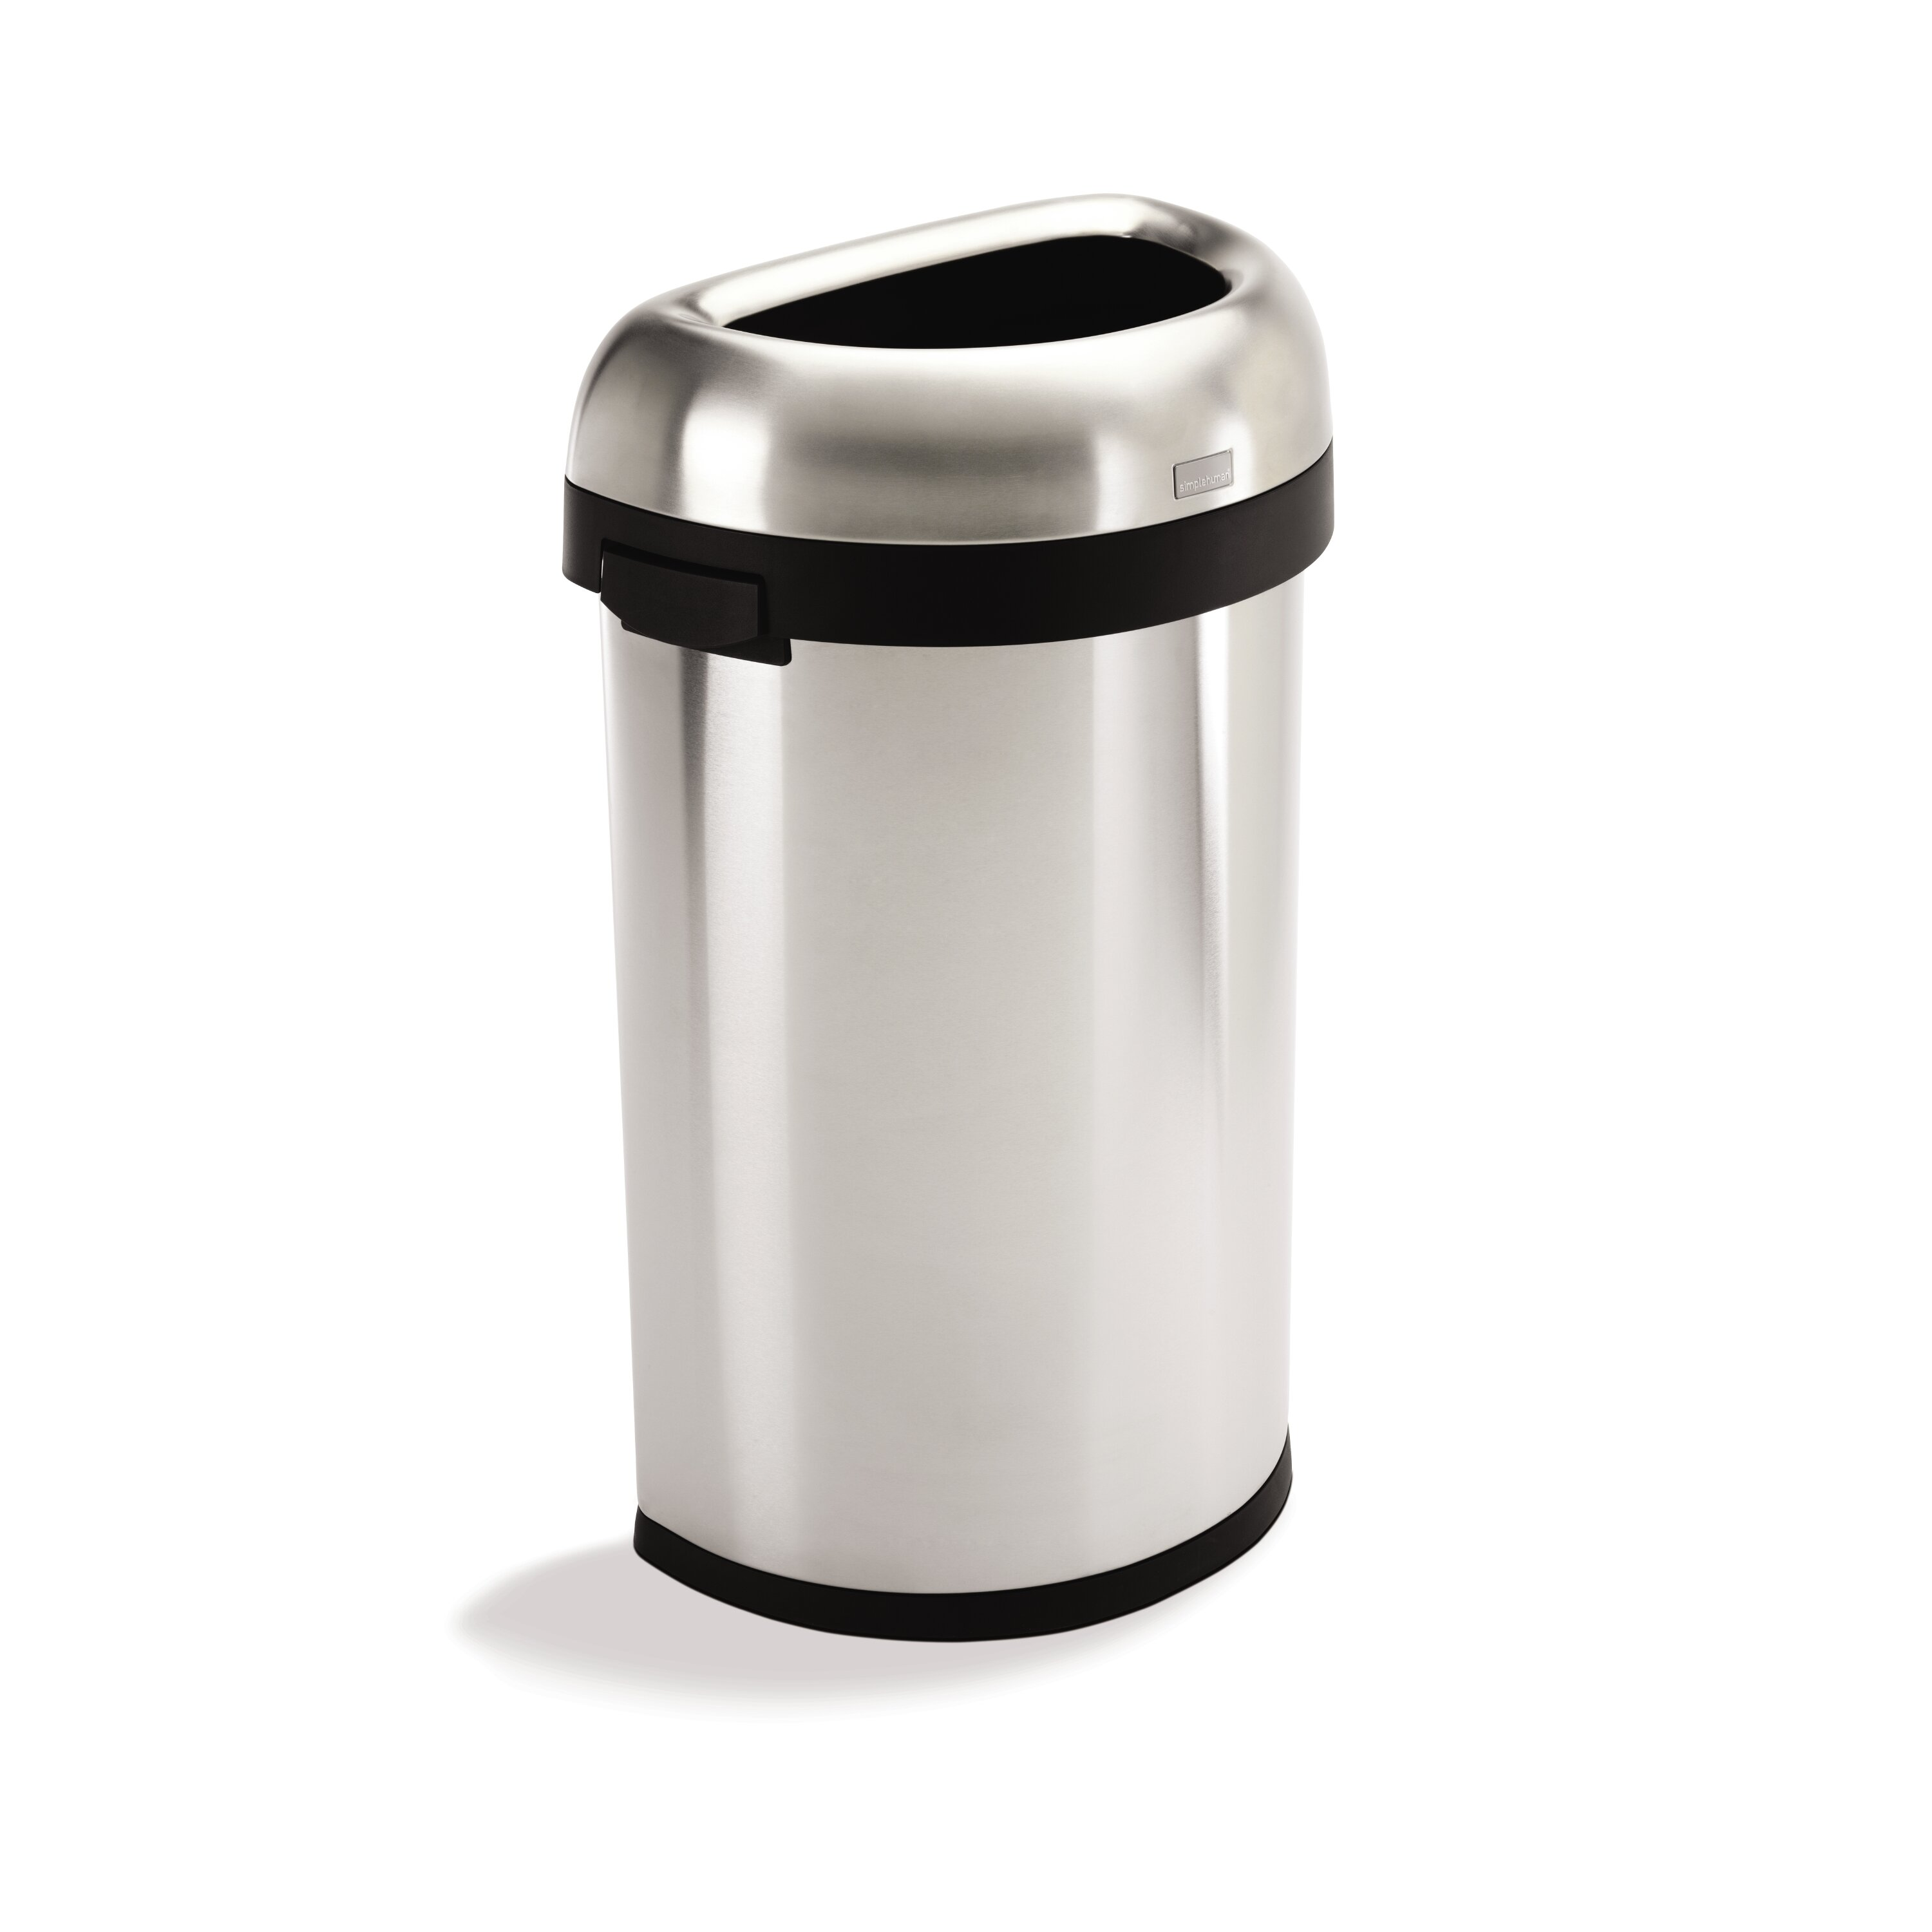 simplehuman 60 l 16 gal semi round open trash can commercial grade stainless steel. Black Bedroom Furniture Sets. Home Design Ideas